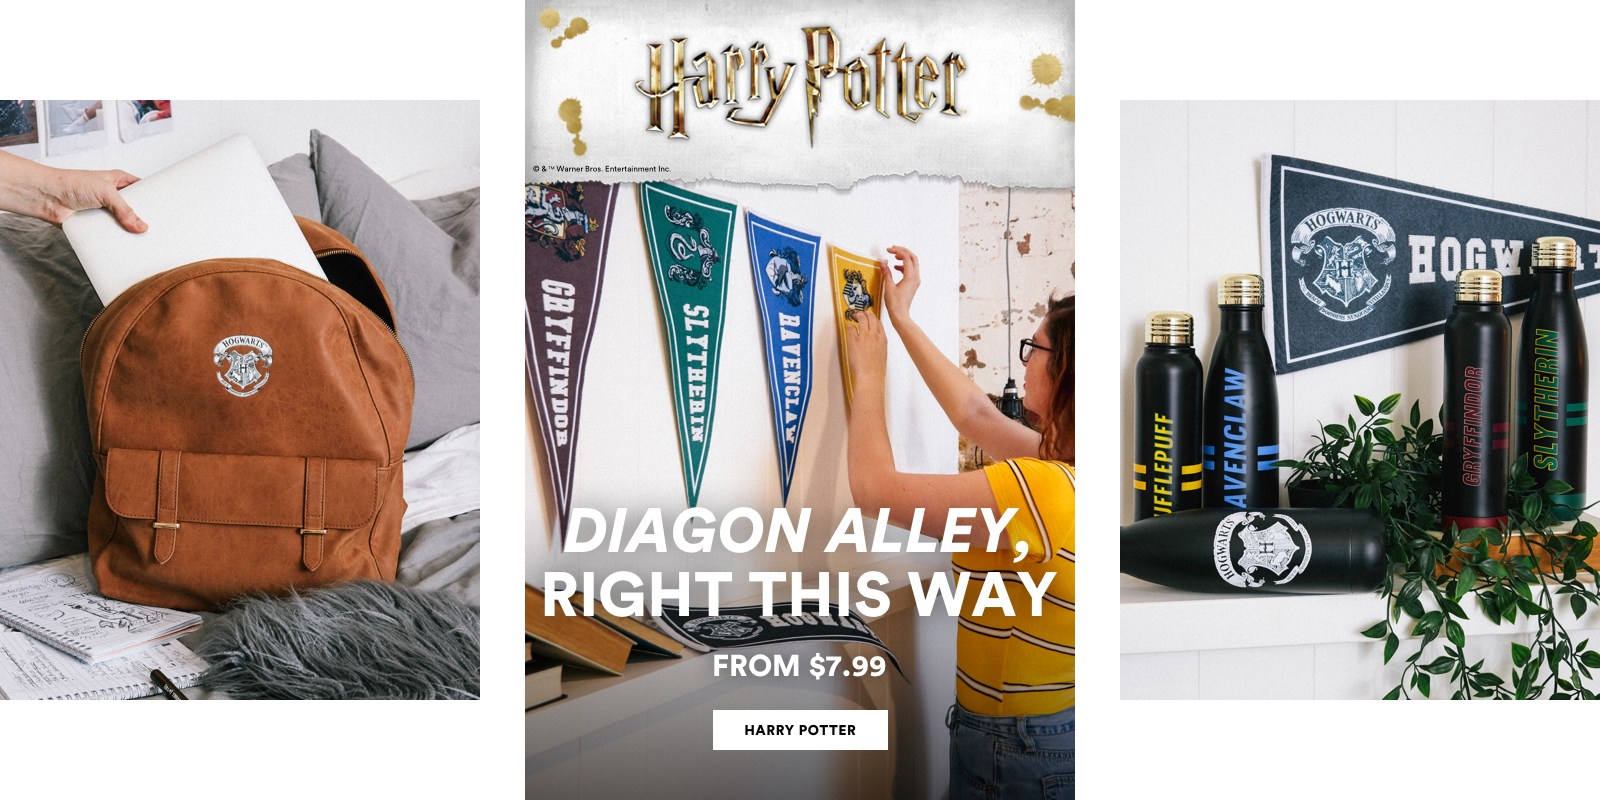 Harry Potter. Diagon Alley, right this way. From $7.99. Click to shop now